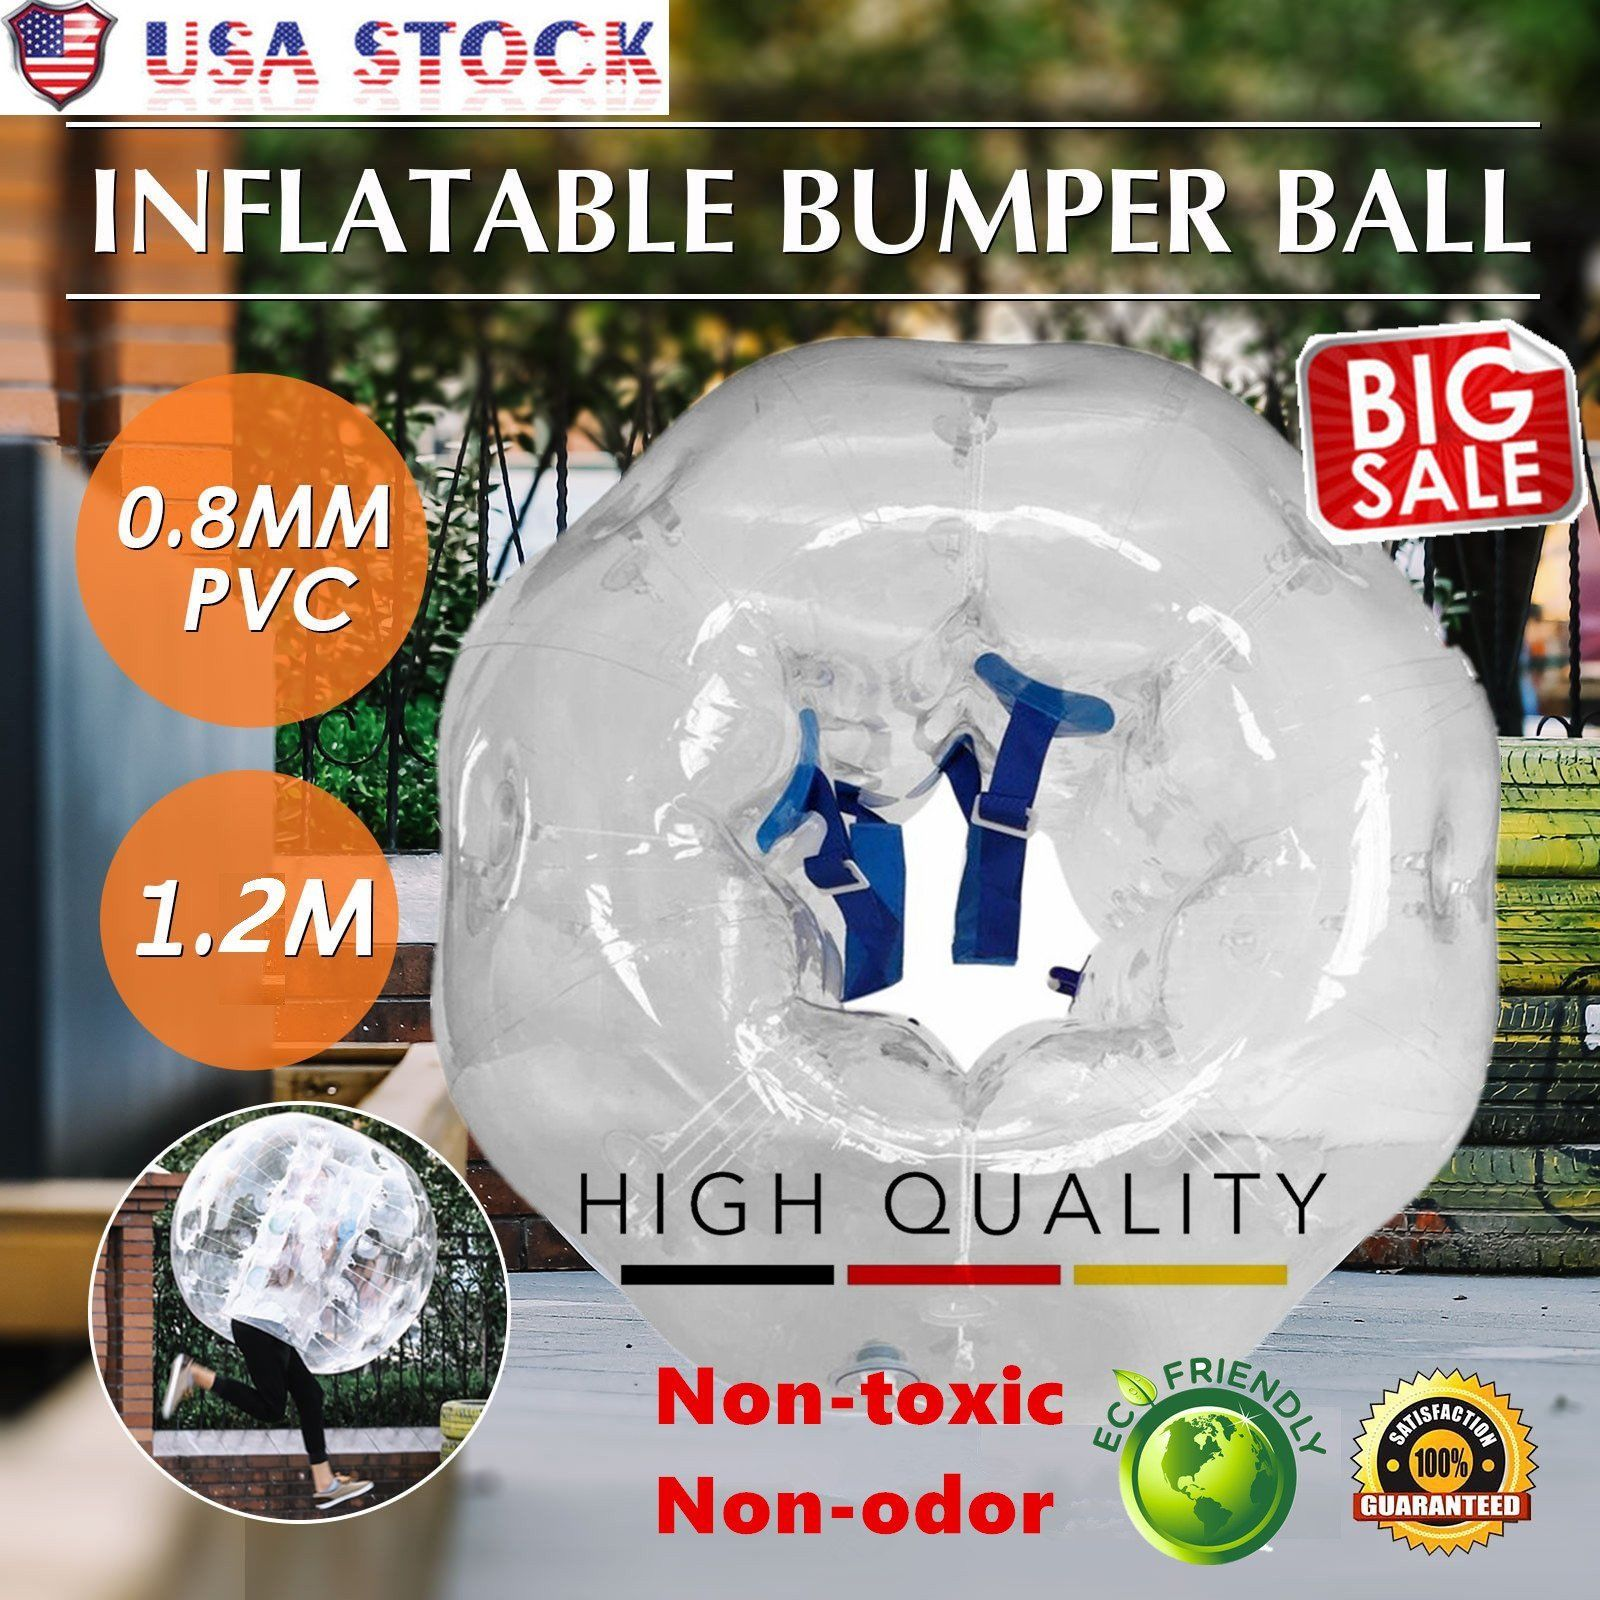 Transparent Transparent 0.8mm PVC Inflatable Bumper Ball Entertainment Human Knocker Ball... by